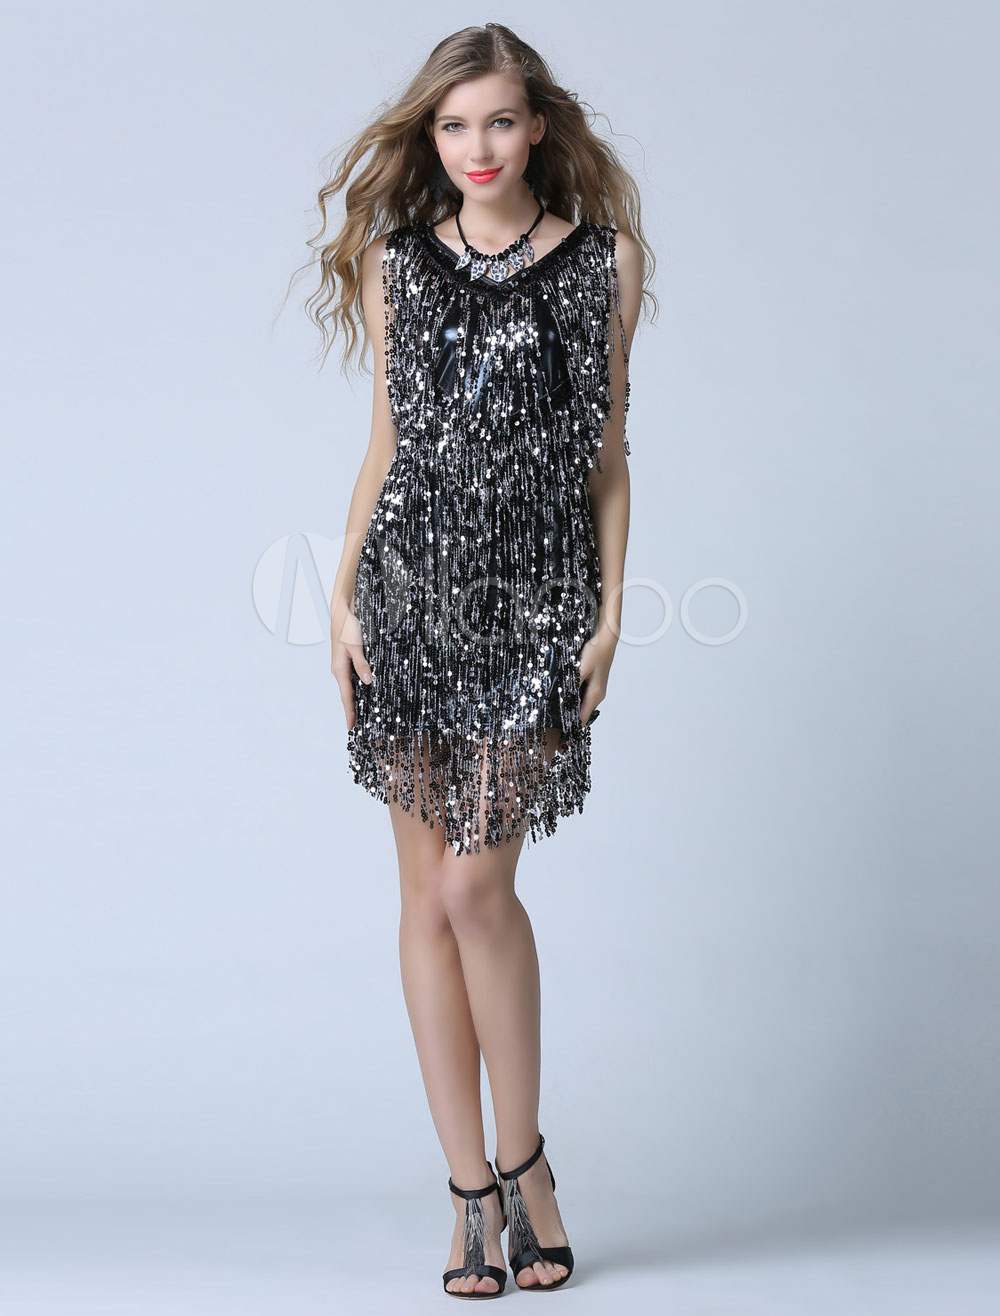 32f751fe479 ... Black Sequin Cocktail Dress Sheath Short Fringe Party Dress Wedding  Guest Dress-No.7. 12. 40%OFF. Color Black